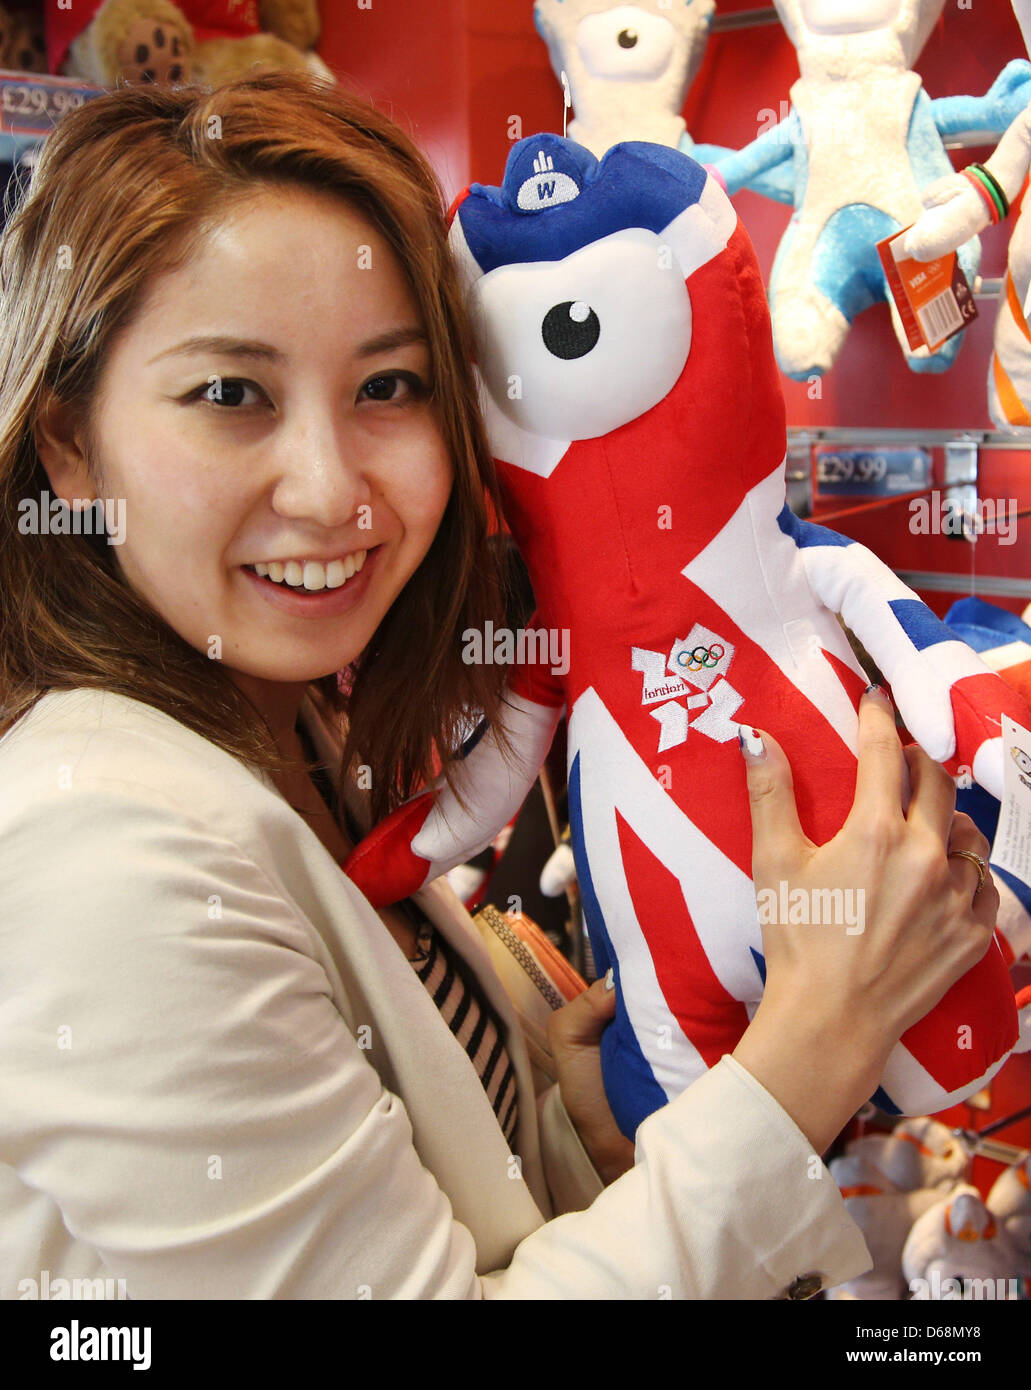 Ryoko Sato hugs the official olympic mascot 'Wenlock' in a souvenir shop in London, Great Britain, 19 July - Stock Image